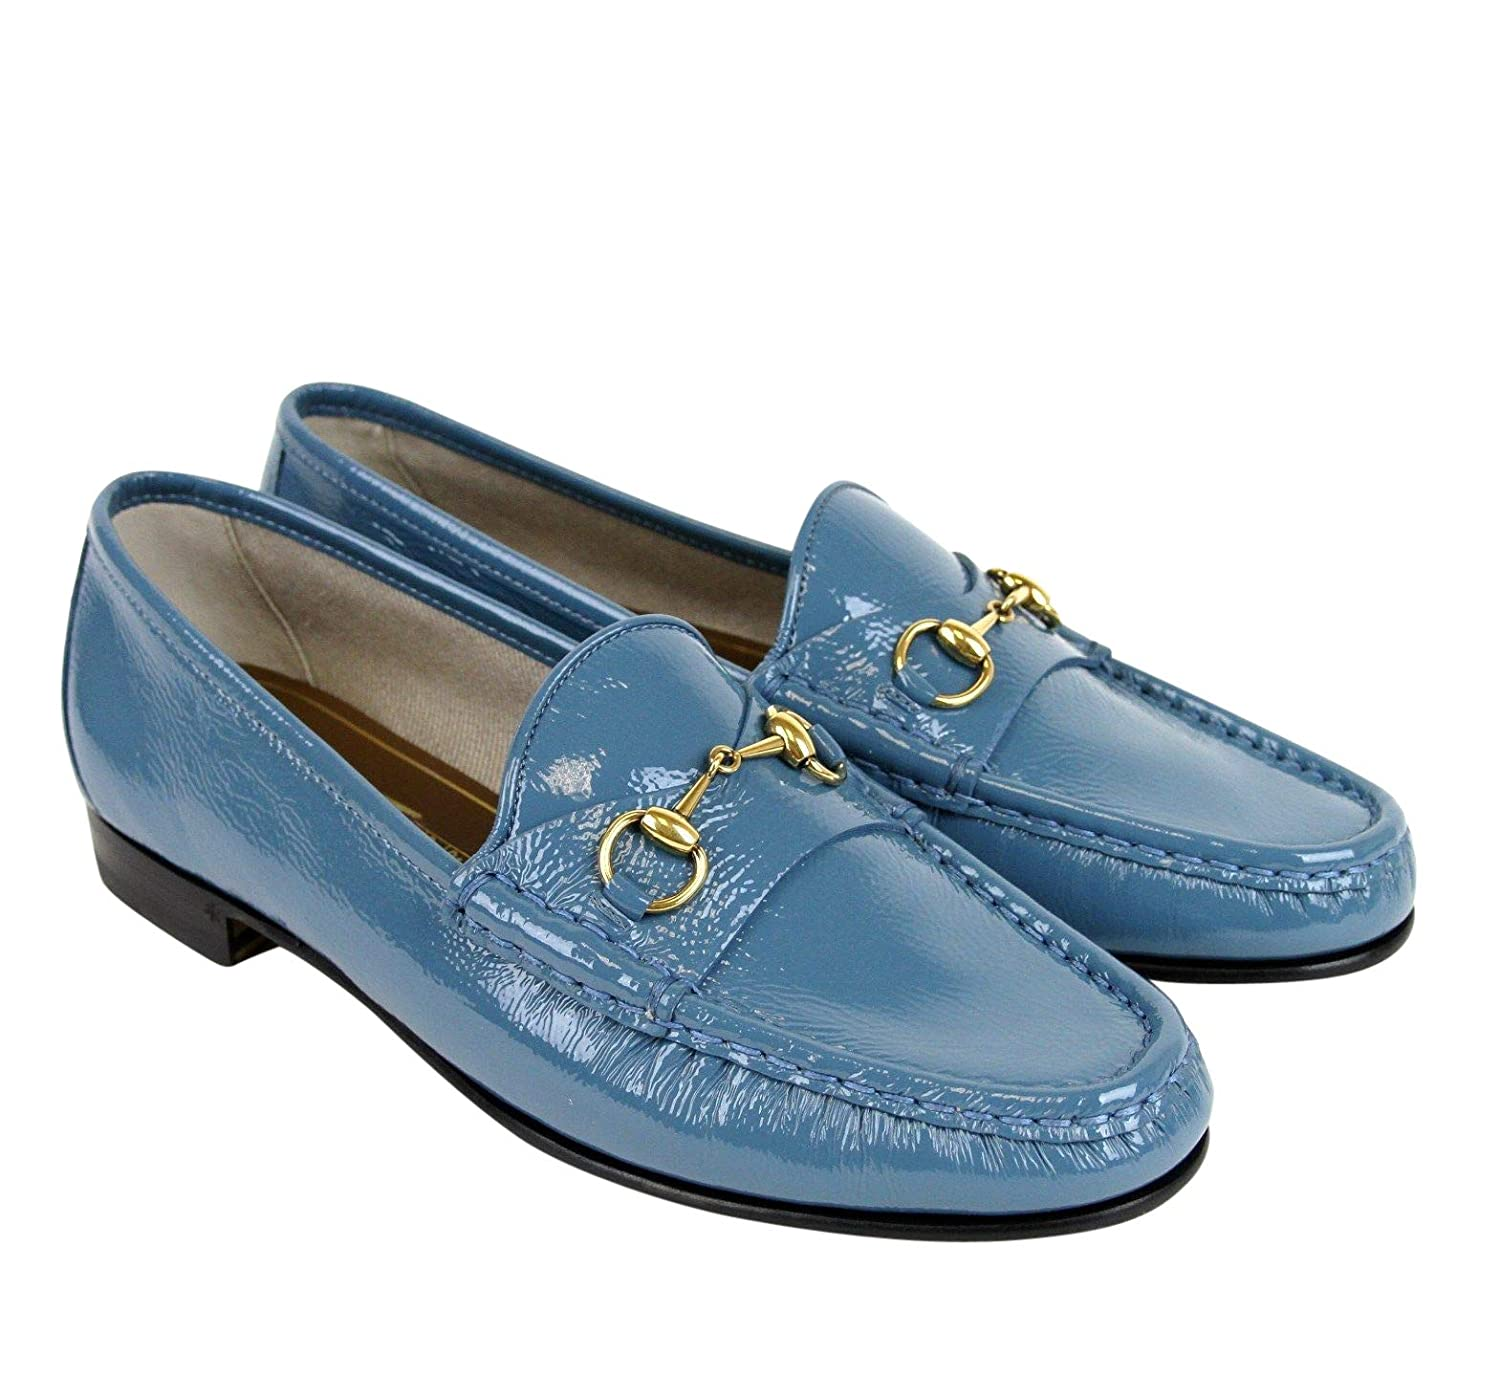 722dff0f8 Amazon.com: Gucci Soft Patent Blue Leather Horsebit Loafer 338348 4400:  Shoes